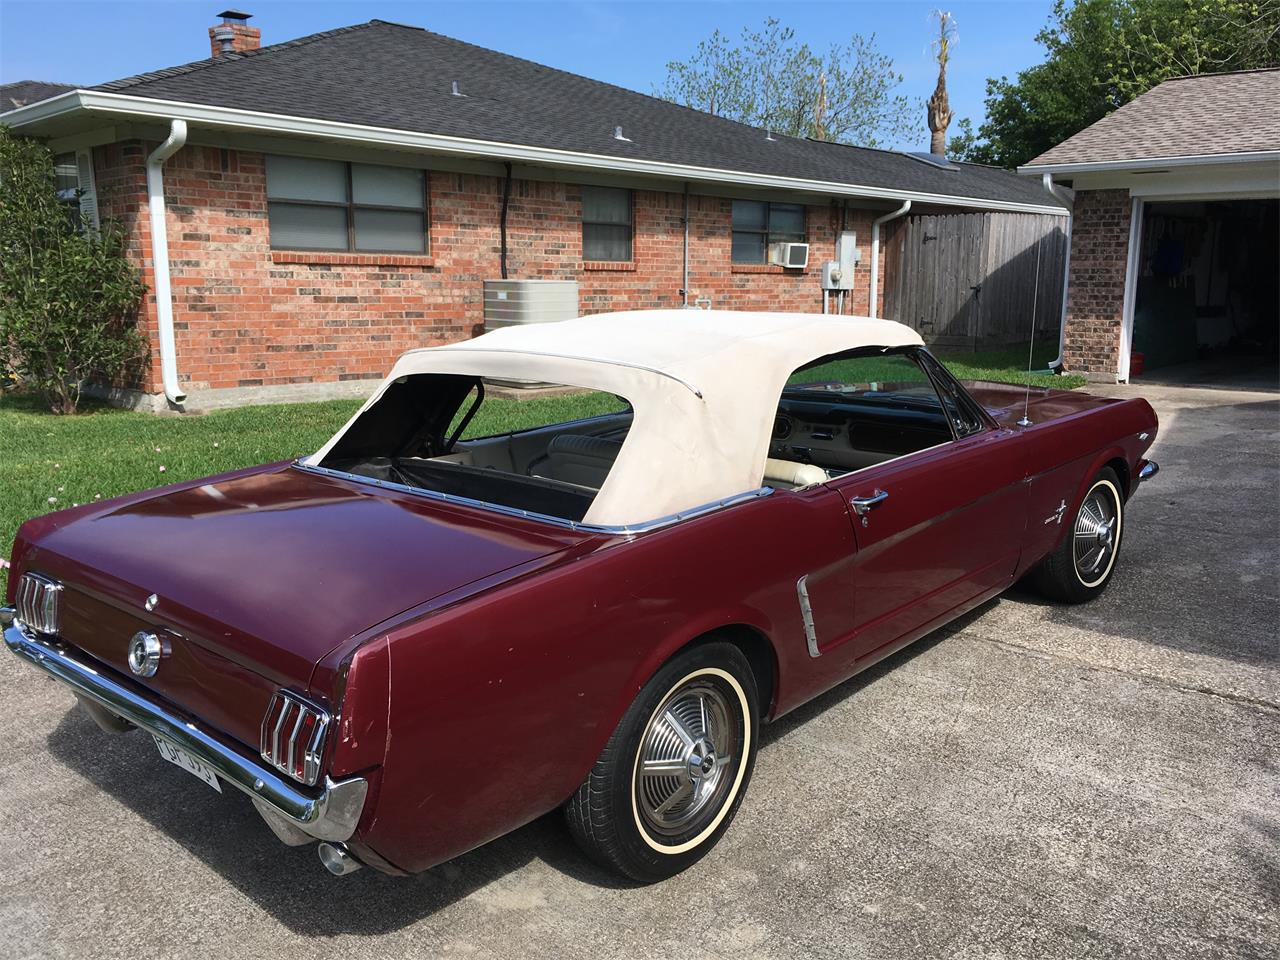 Large Picture of '65 Ford Mustang - $28,000.00 - N6IZ